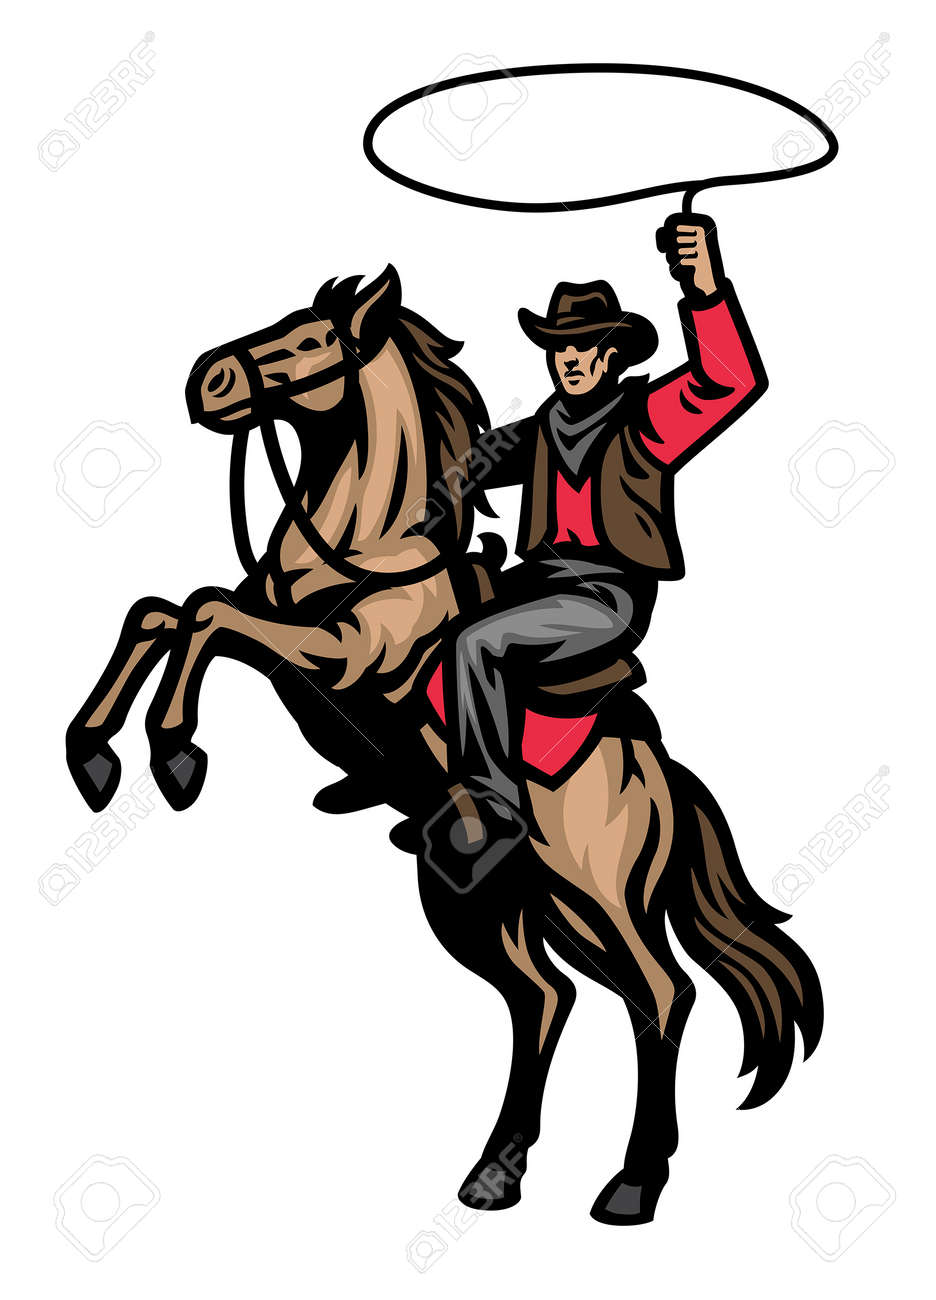 vector of cowboy mascot riding the standing horse - 165301205